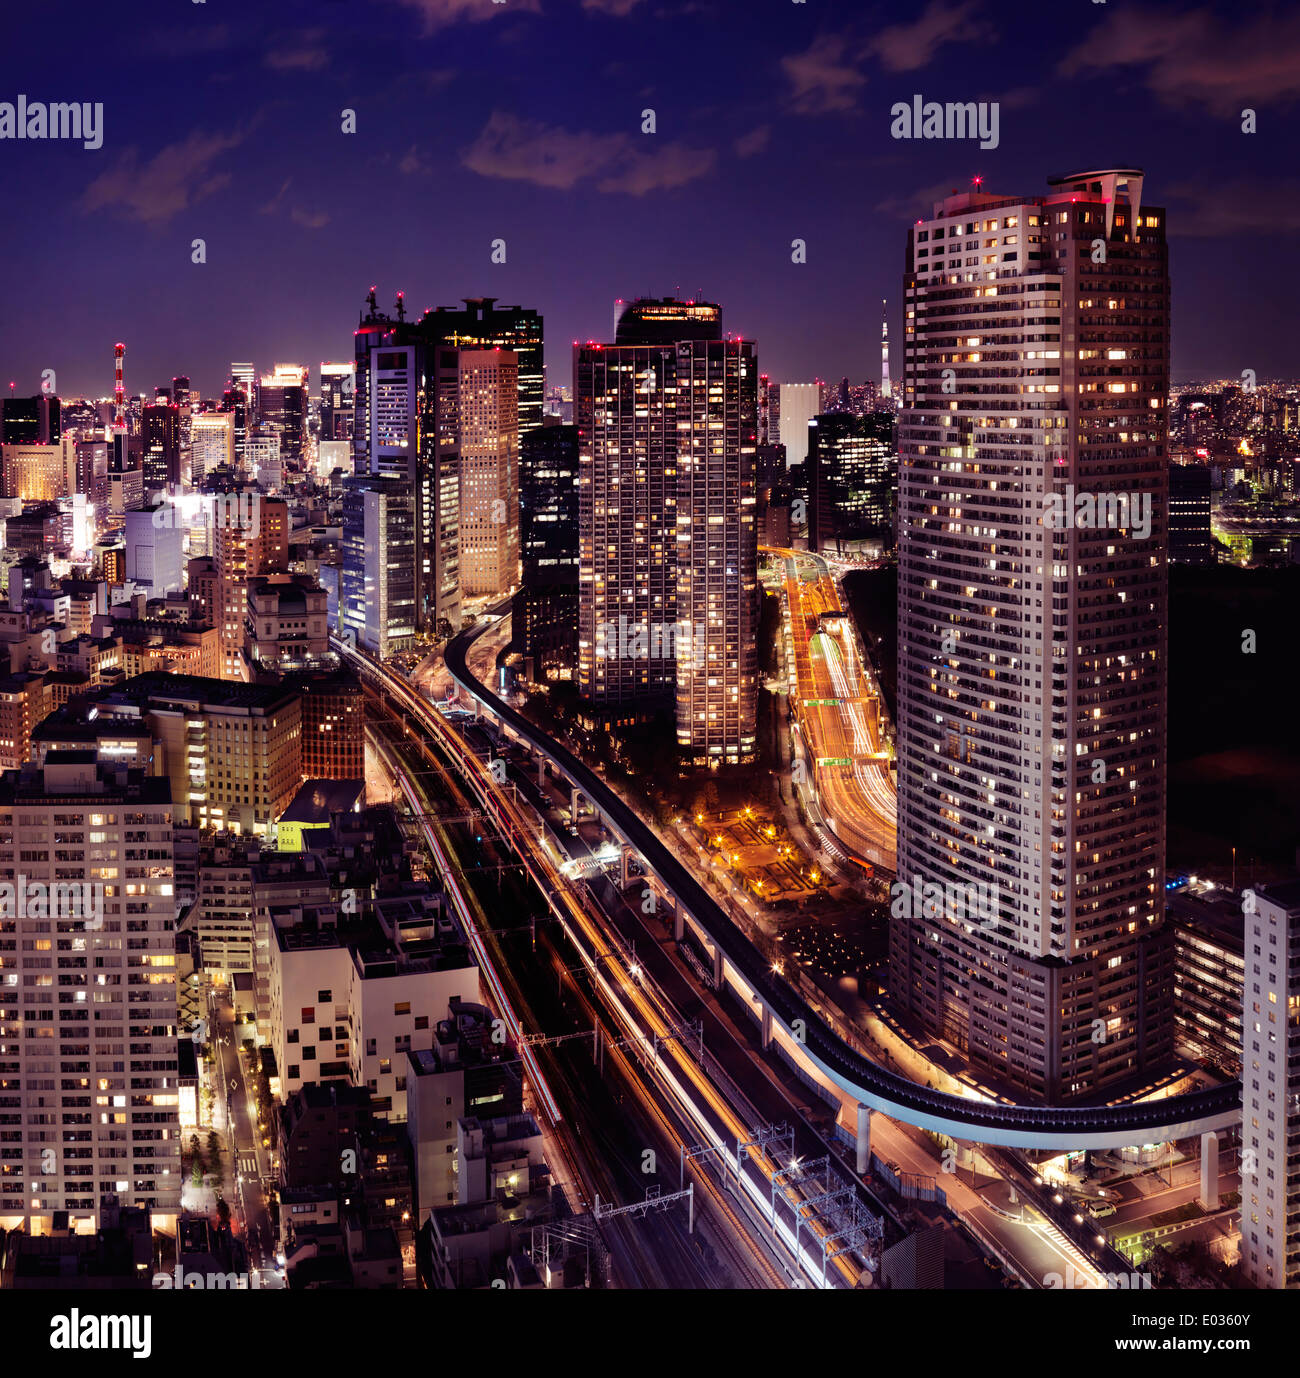 Tokyo city aerial nighttime view with illuminated highways and train lines. Minato, Tokyo, Japan. - Stock Image